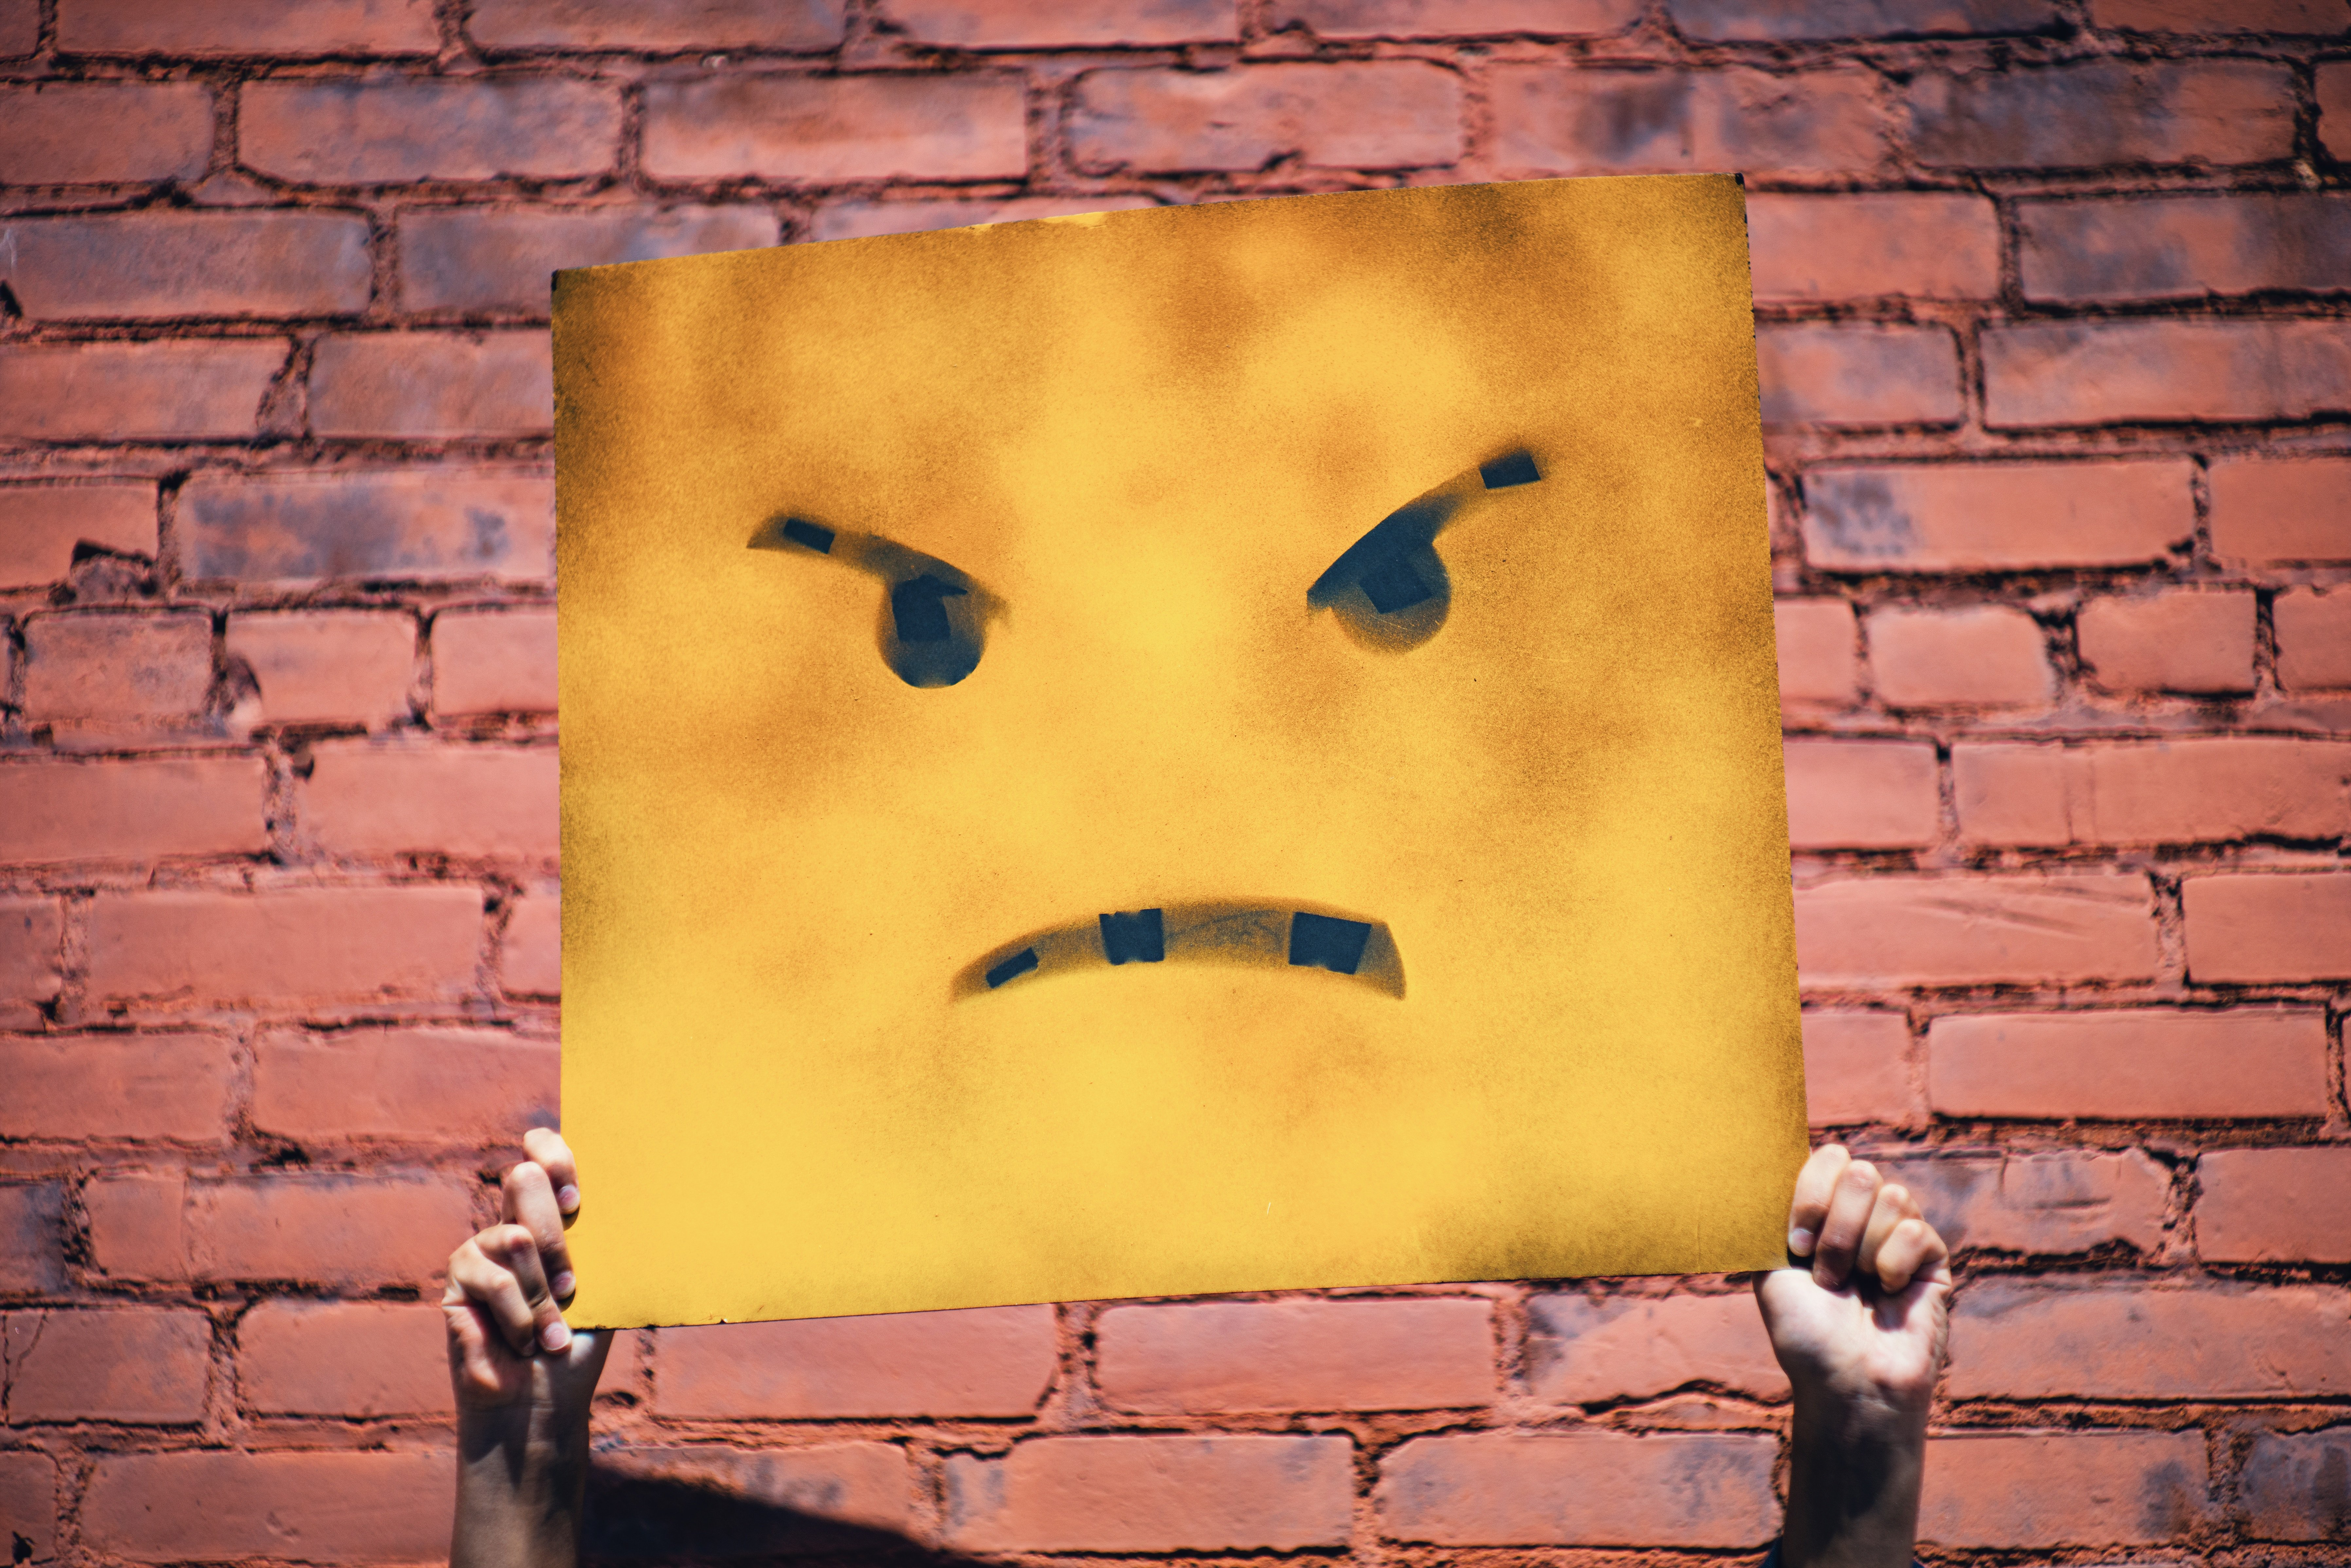 a picture of someone holding up a sign that has an angry or frustrated face on it